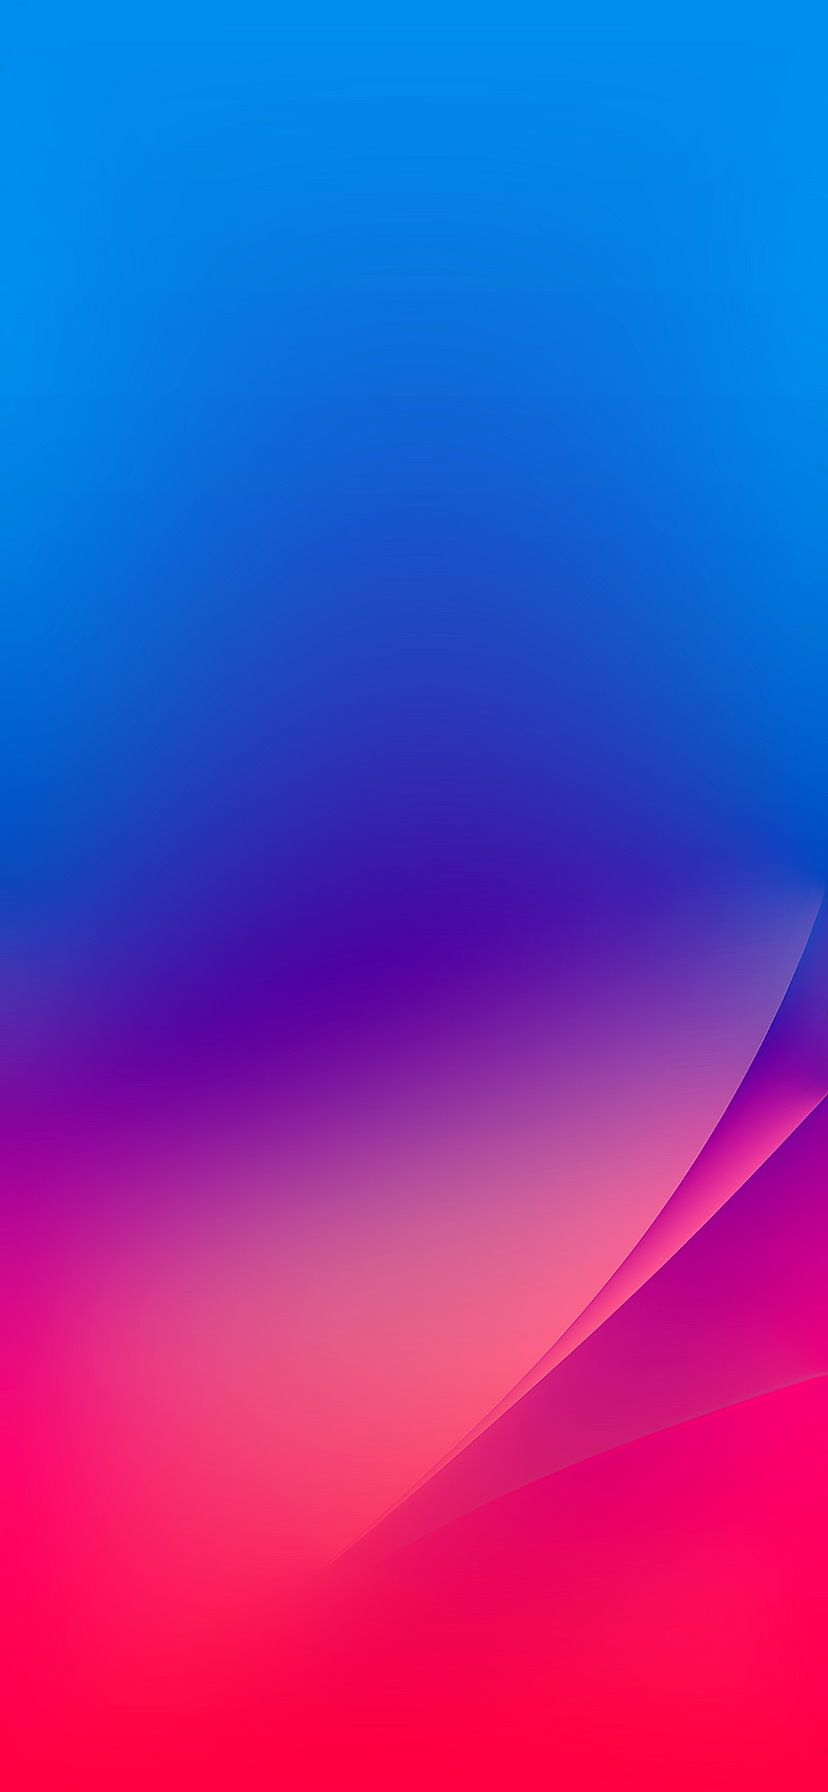 Wallpapers iPhone XR Fond d'écran android, Fond d'écran